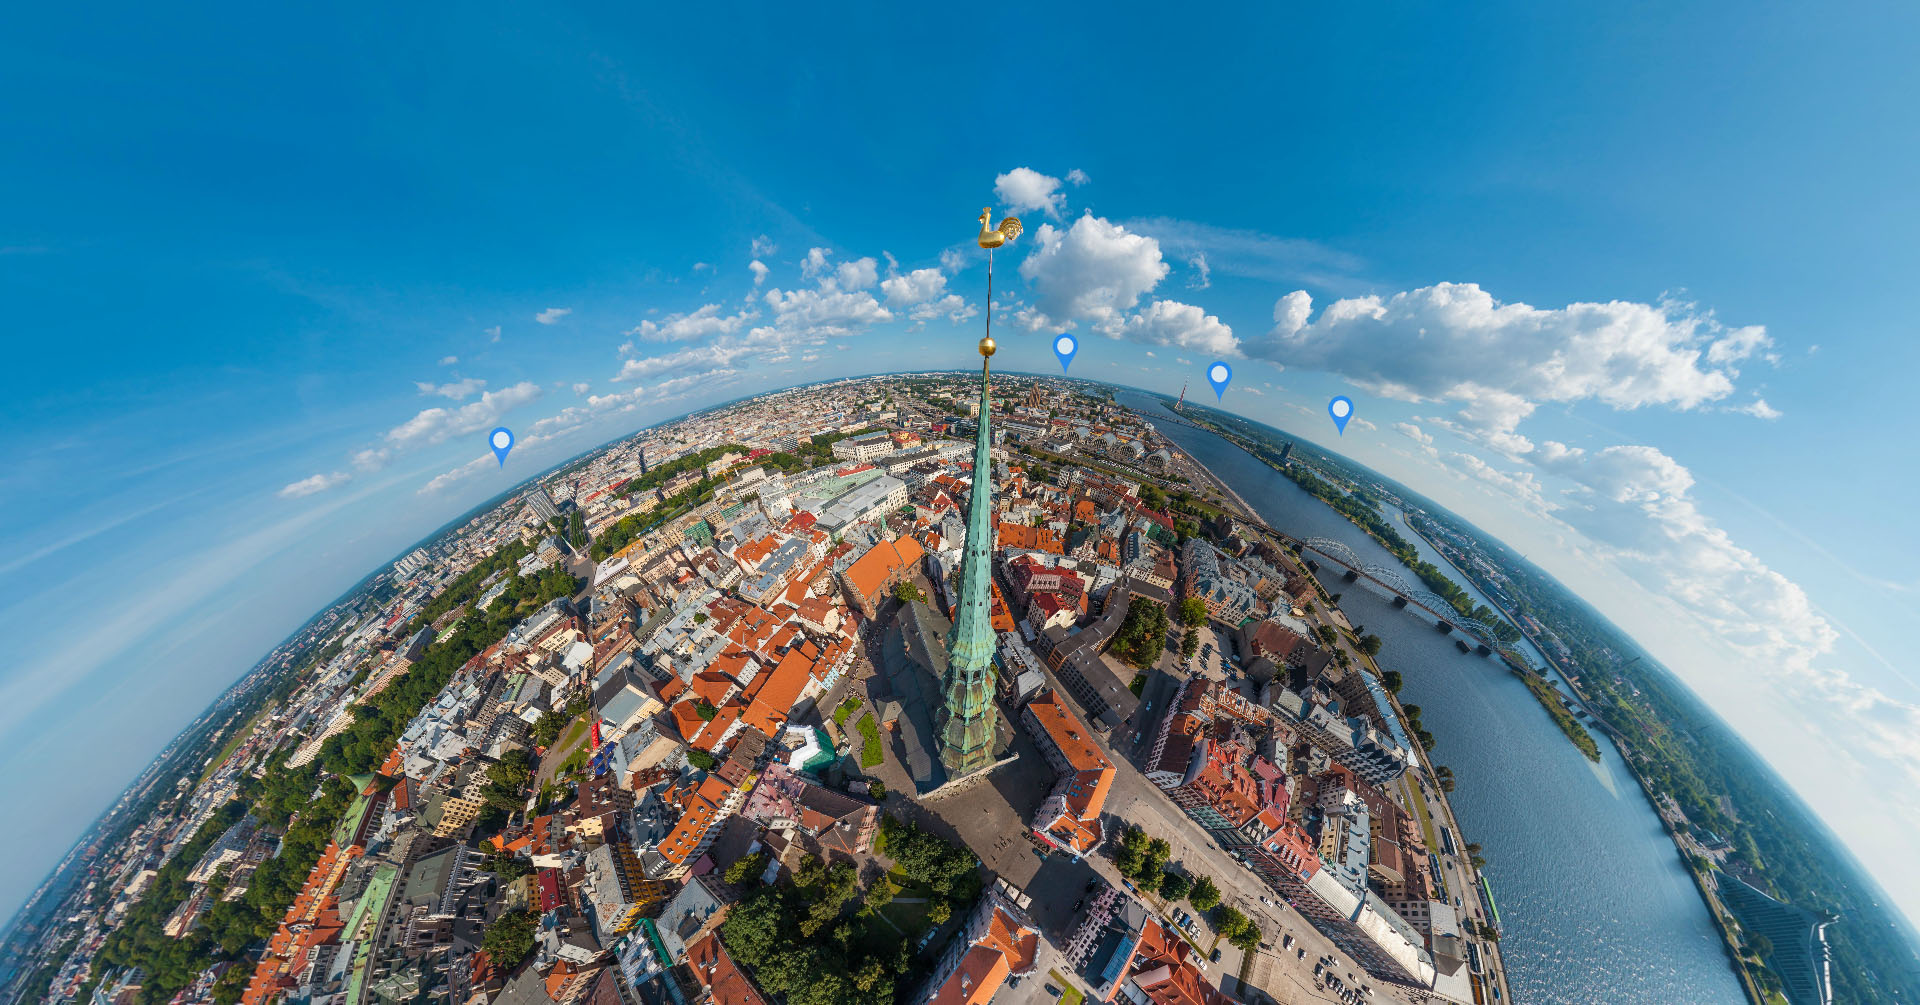 Riga-City-Aerial-Virtual-Tour-360-degree-panorama-from-OCEAN.LV_